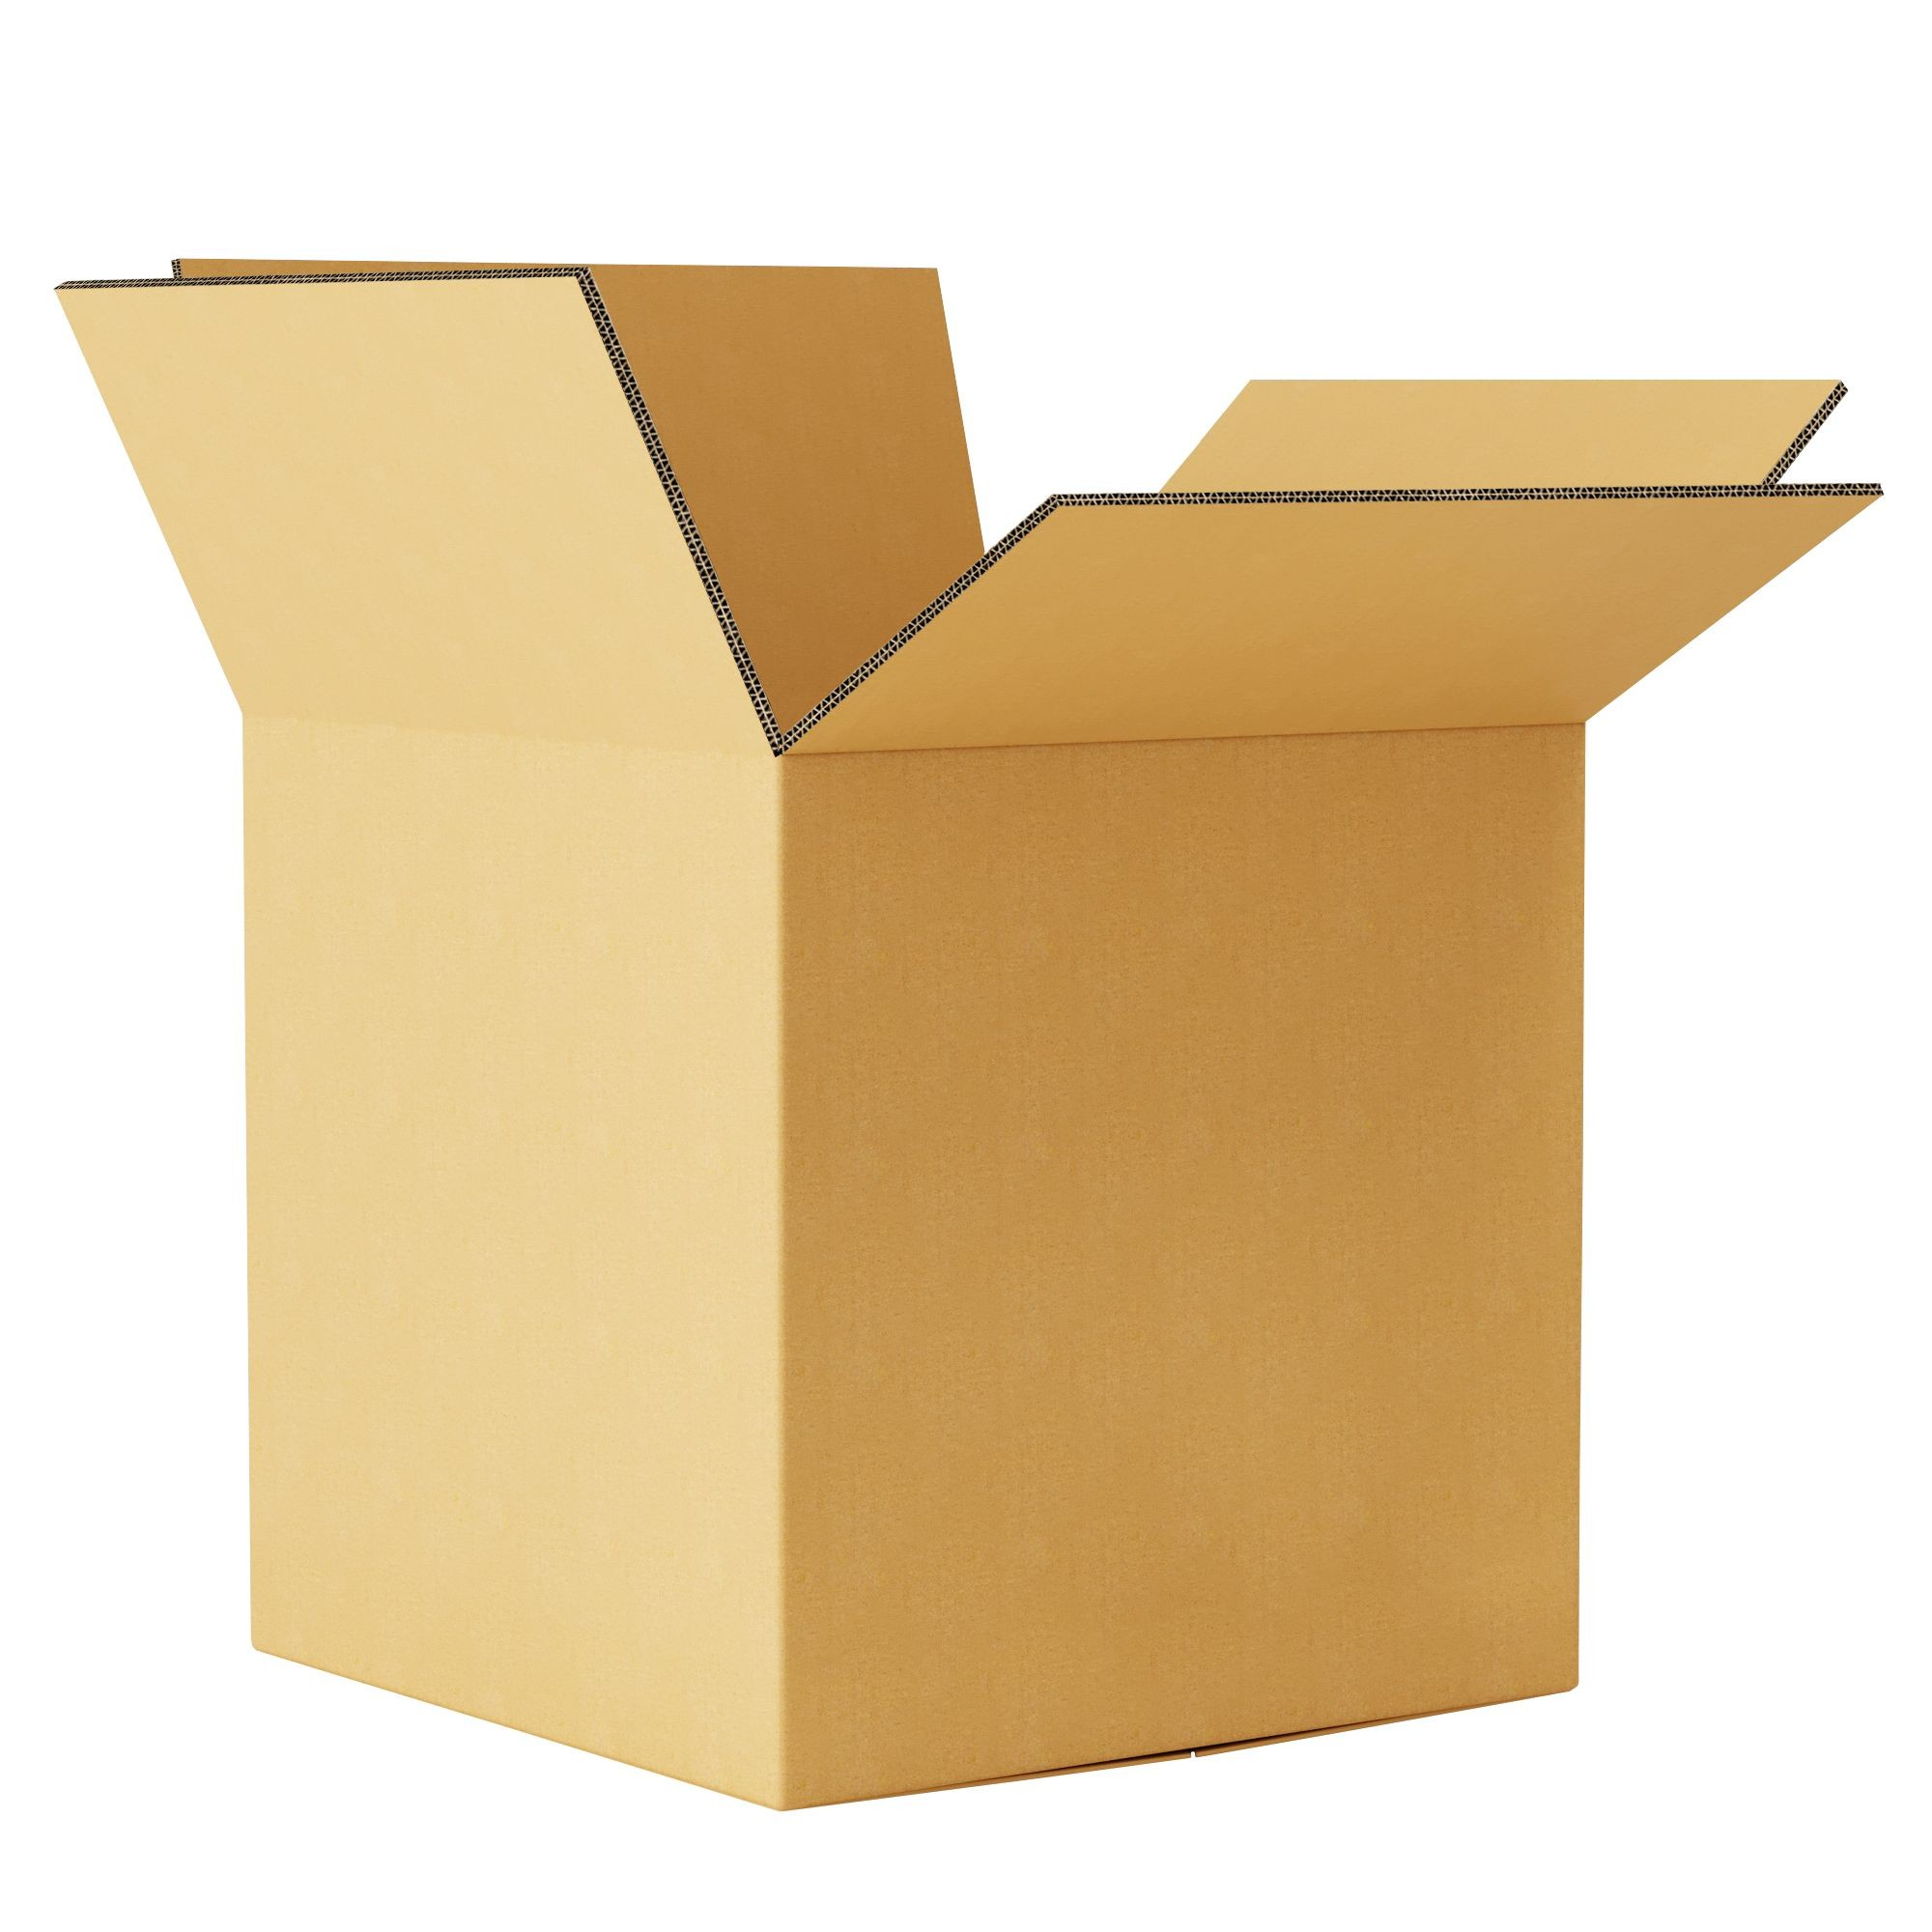 """TOTALPACK® 24 x 24 x 24"""" Double Wall Corrugated """"Printed This Side Up"""" Boxes 15 Units"""